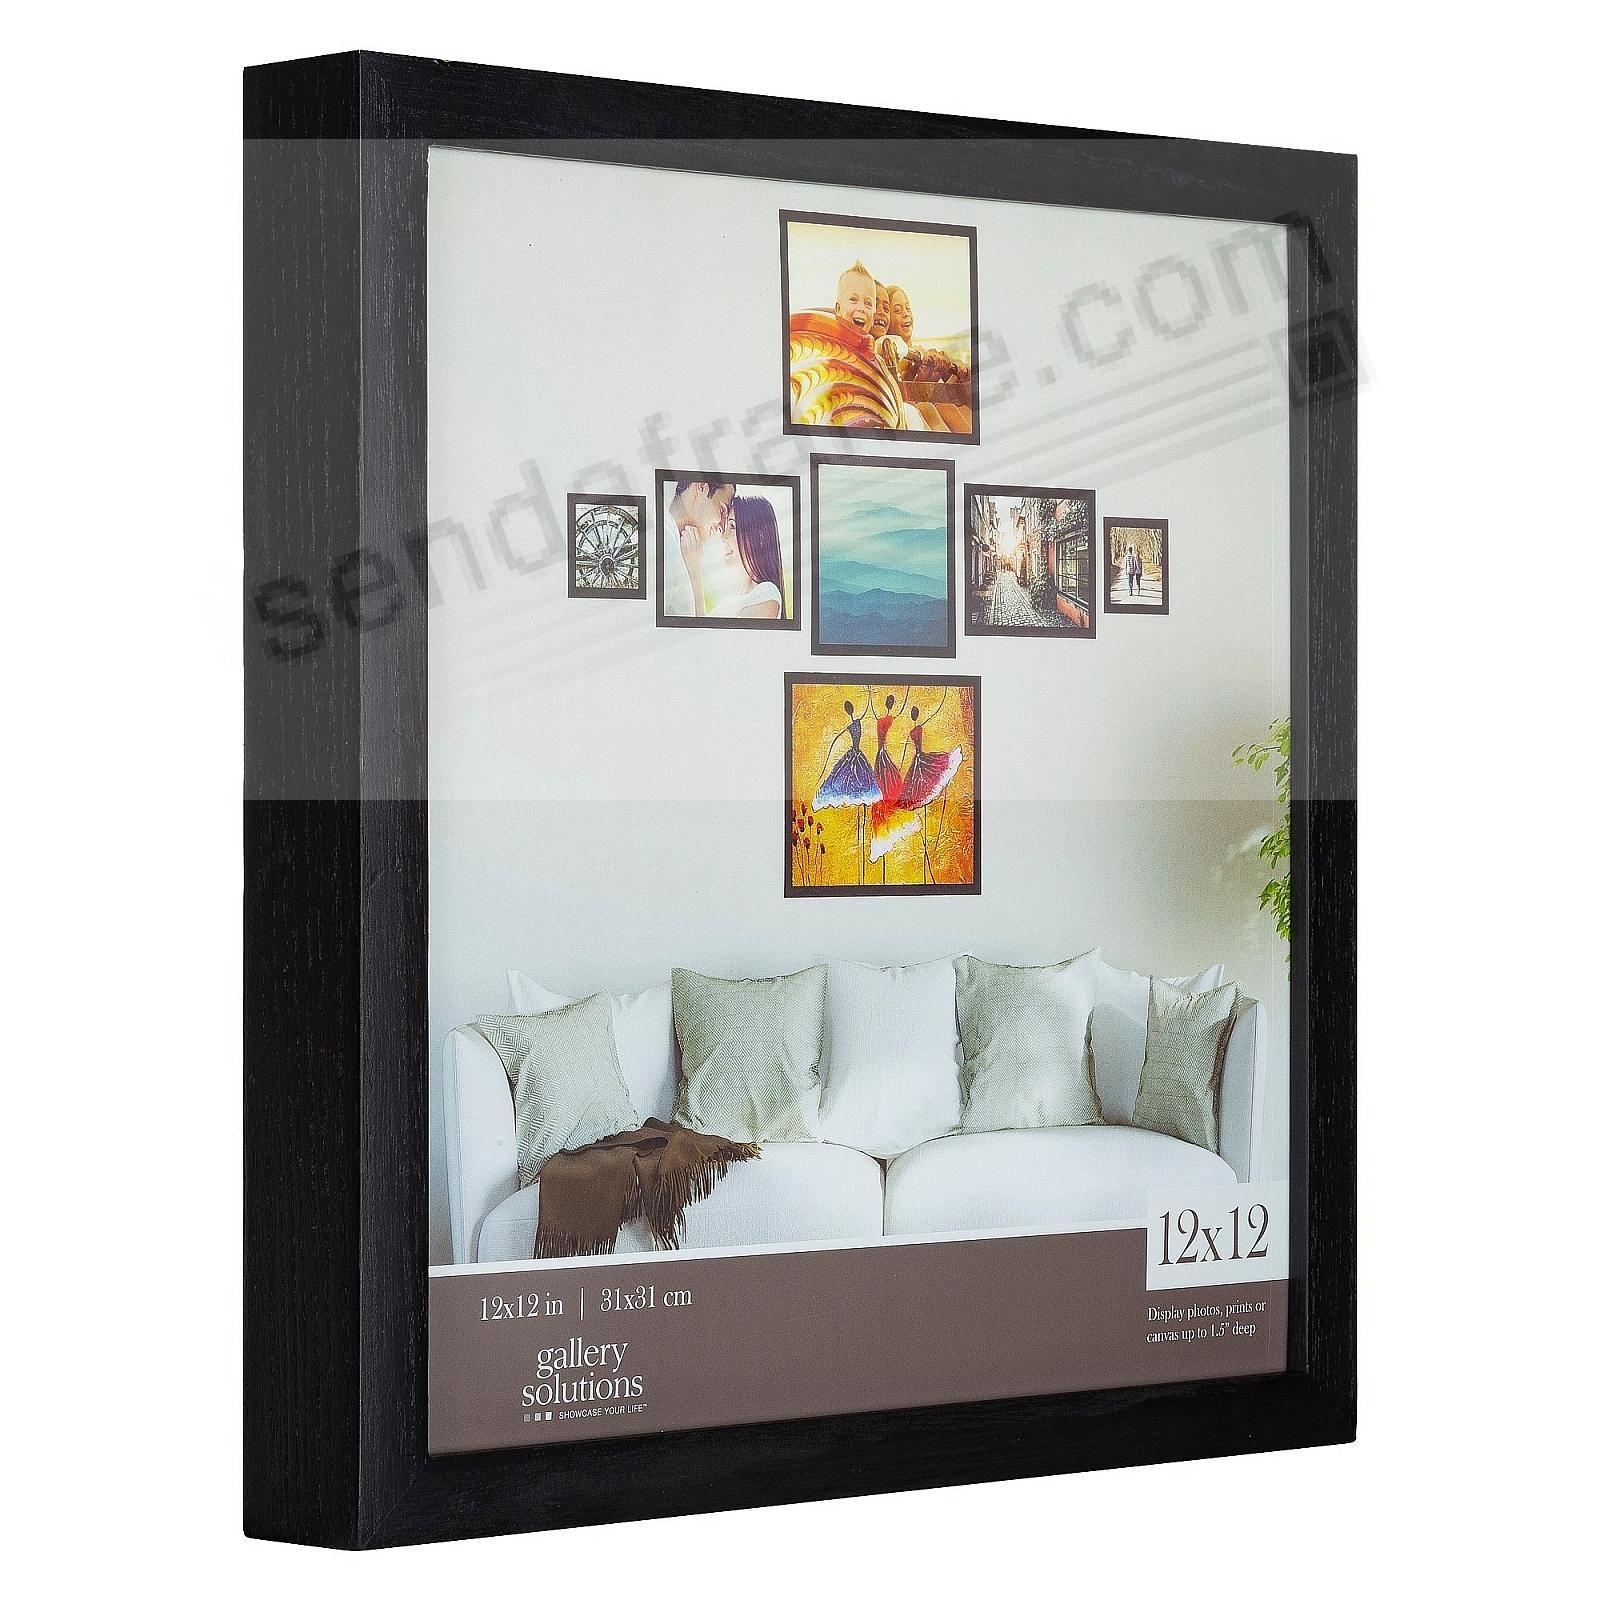 BLACK GALLERY 12x12 frame by Gallery Solutions®